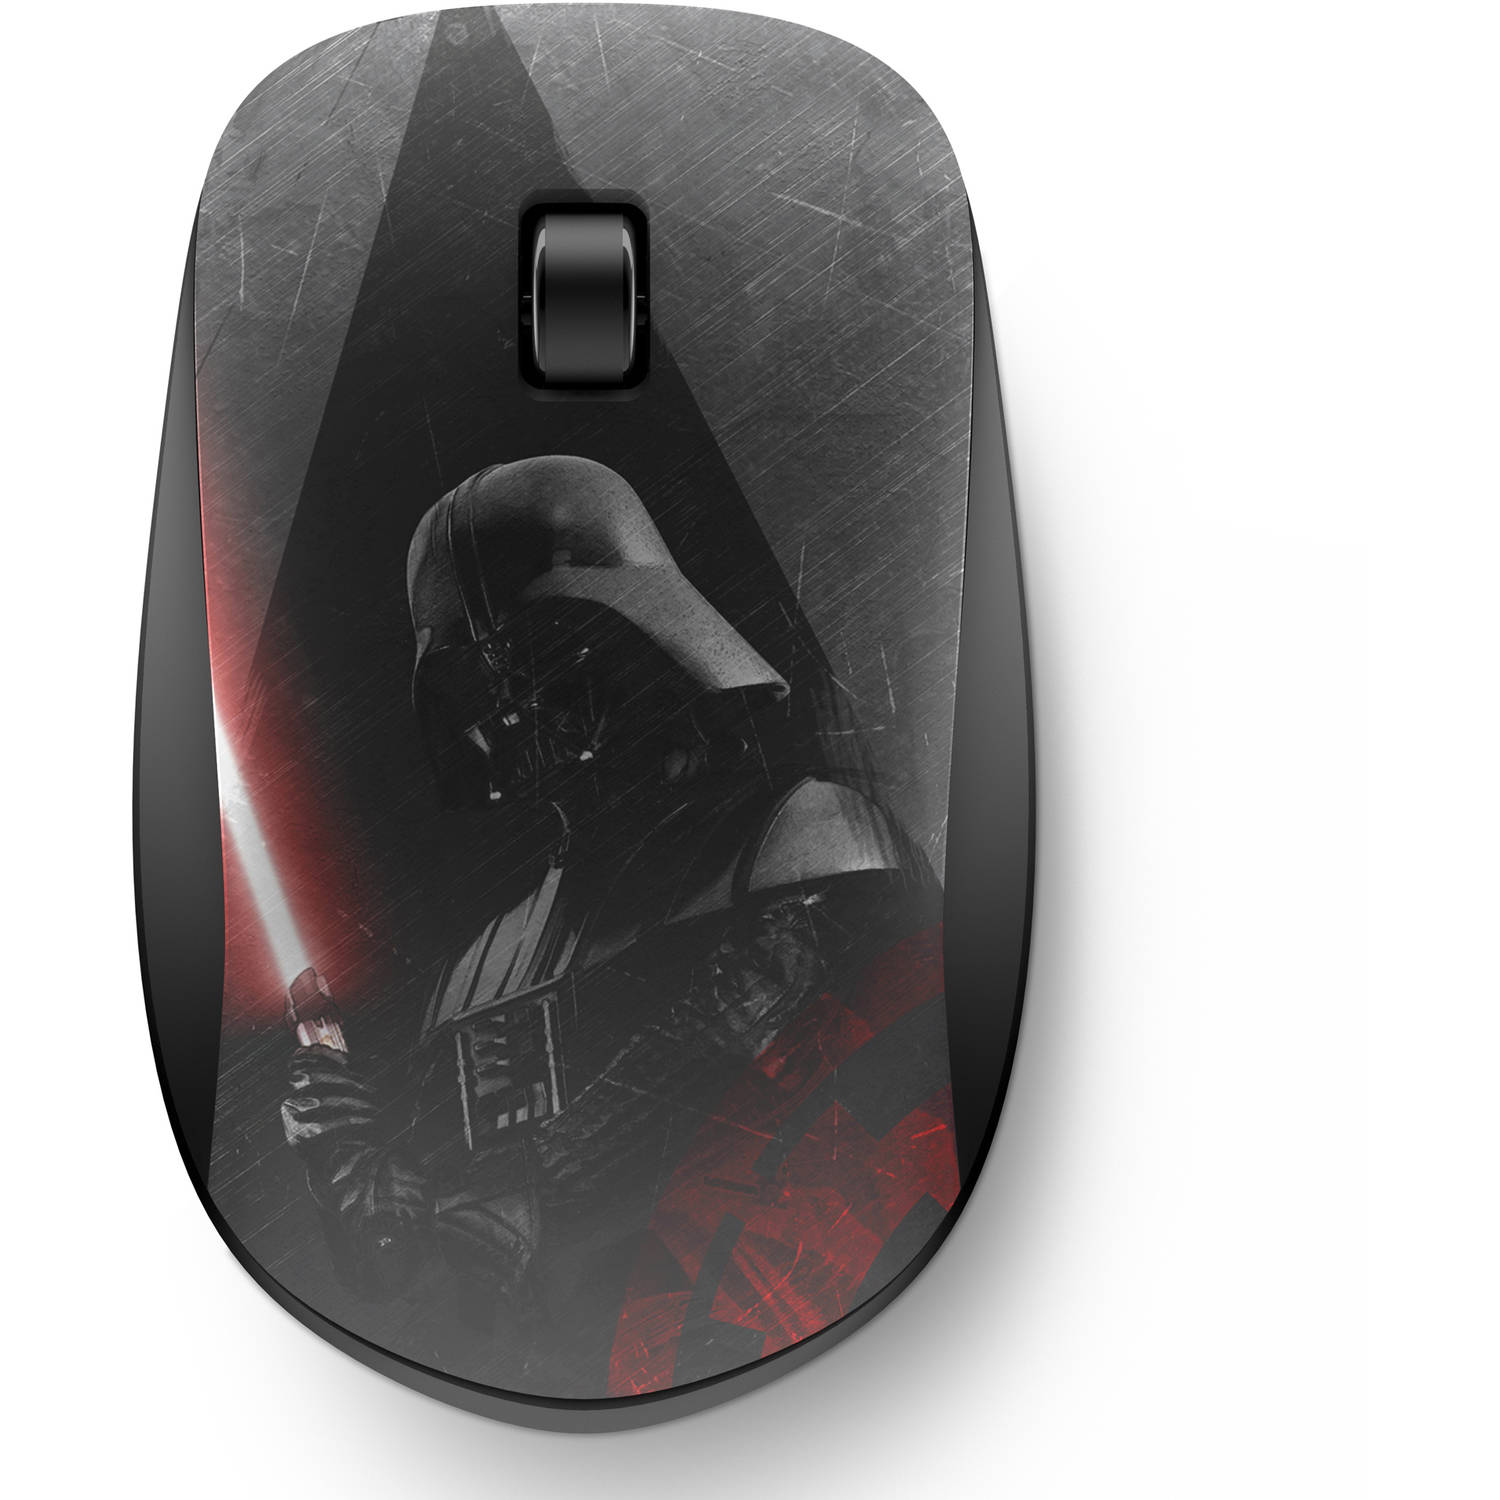 HP Z4000 Star Wars Special Edition Wireless Mouse